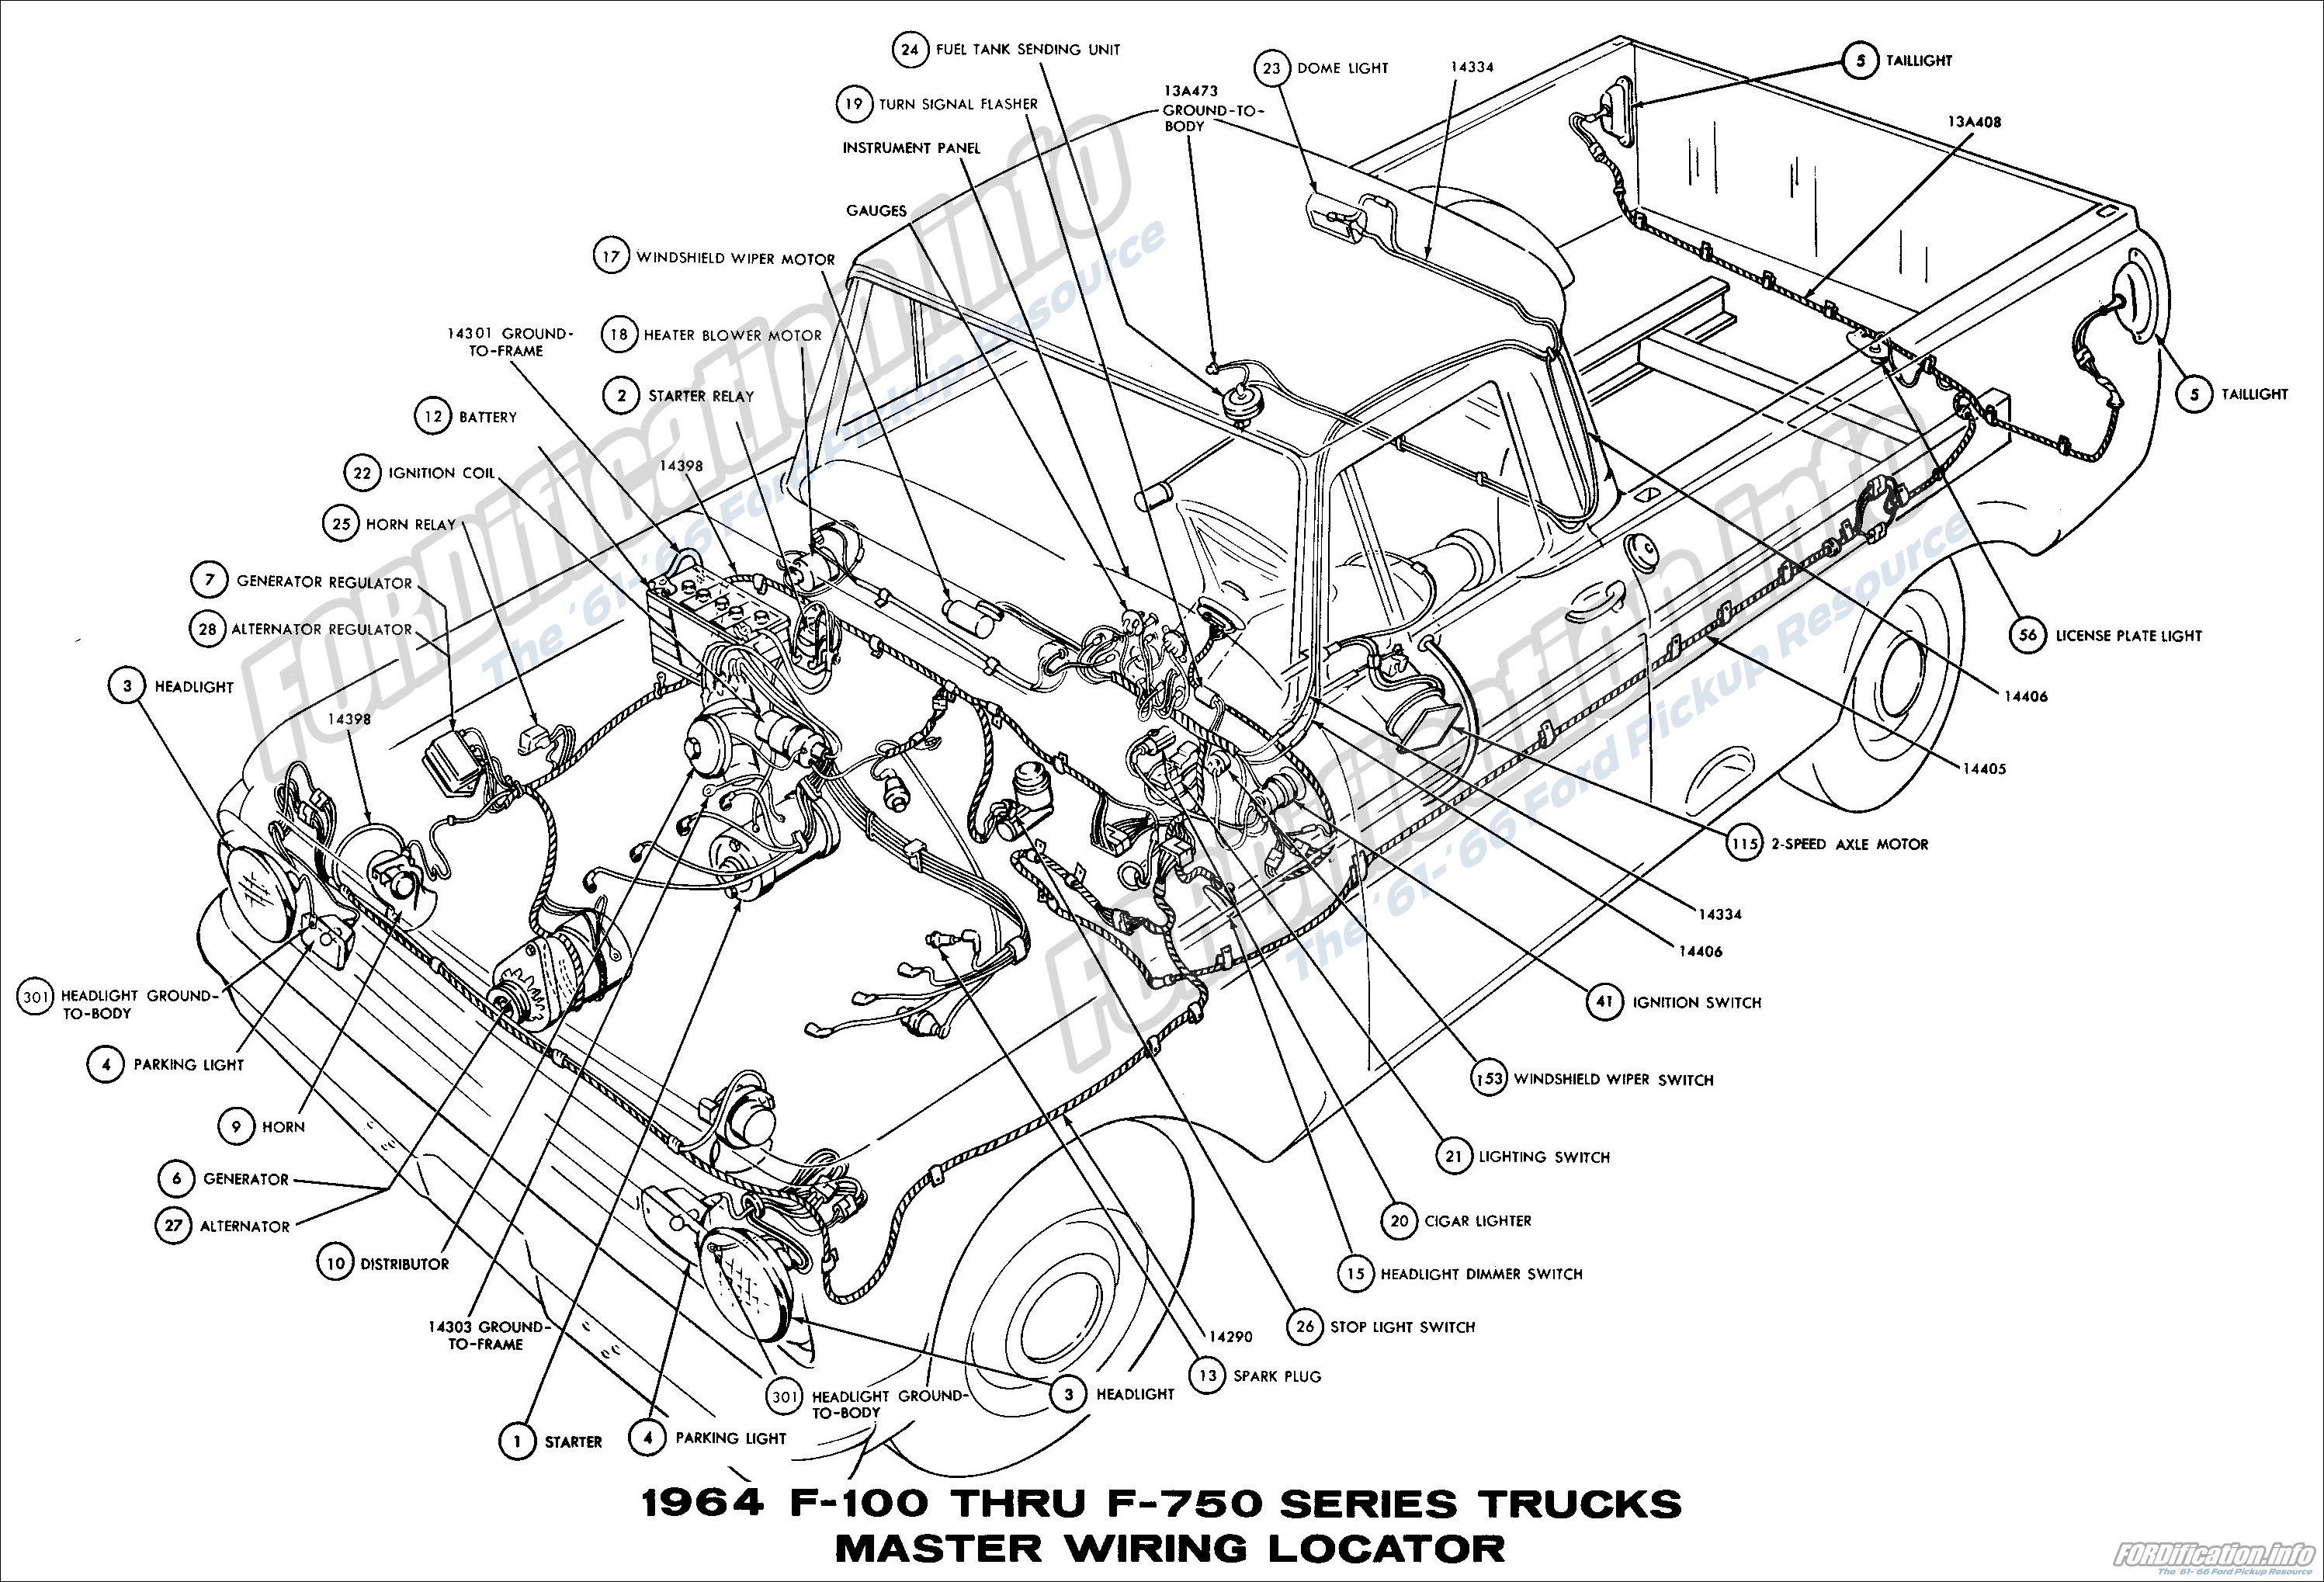 1964 ford truck wiring diagrams fordification info the 61 66 1964 f100 thru f750 series trucks master wiring locator